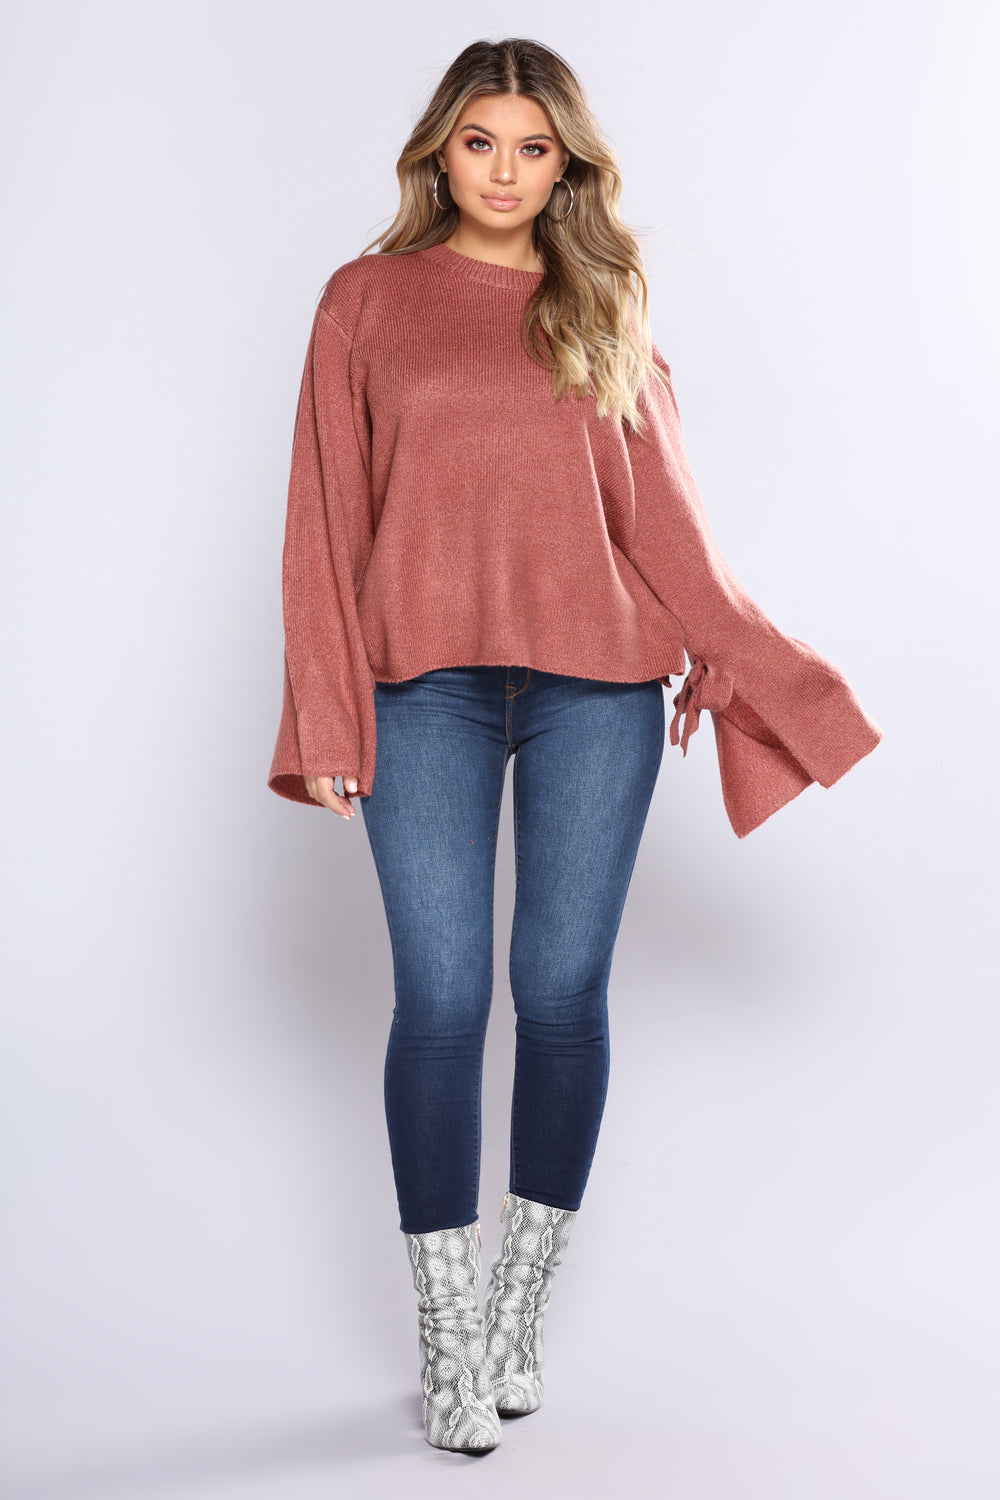 Lulu Knotted Sleeve Sweater - Red Bean